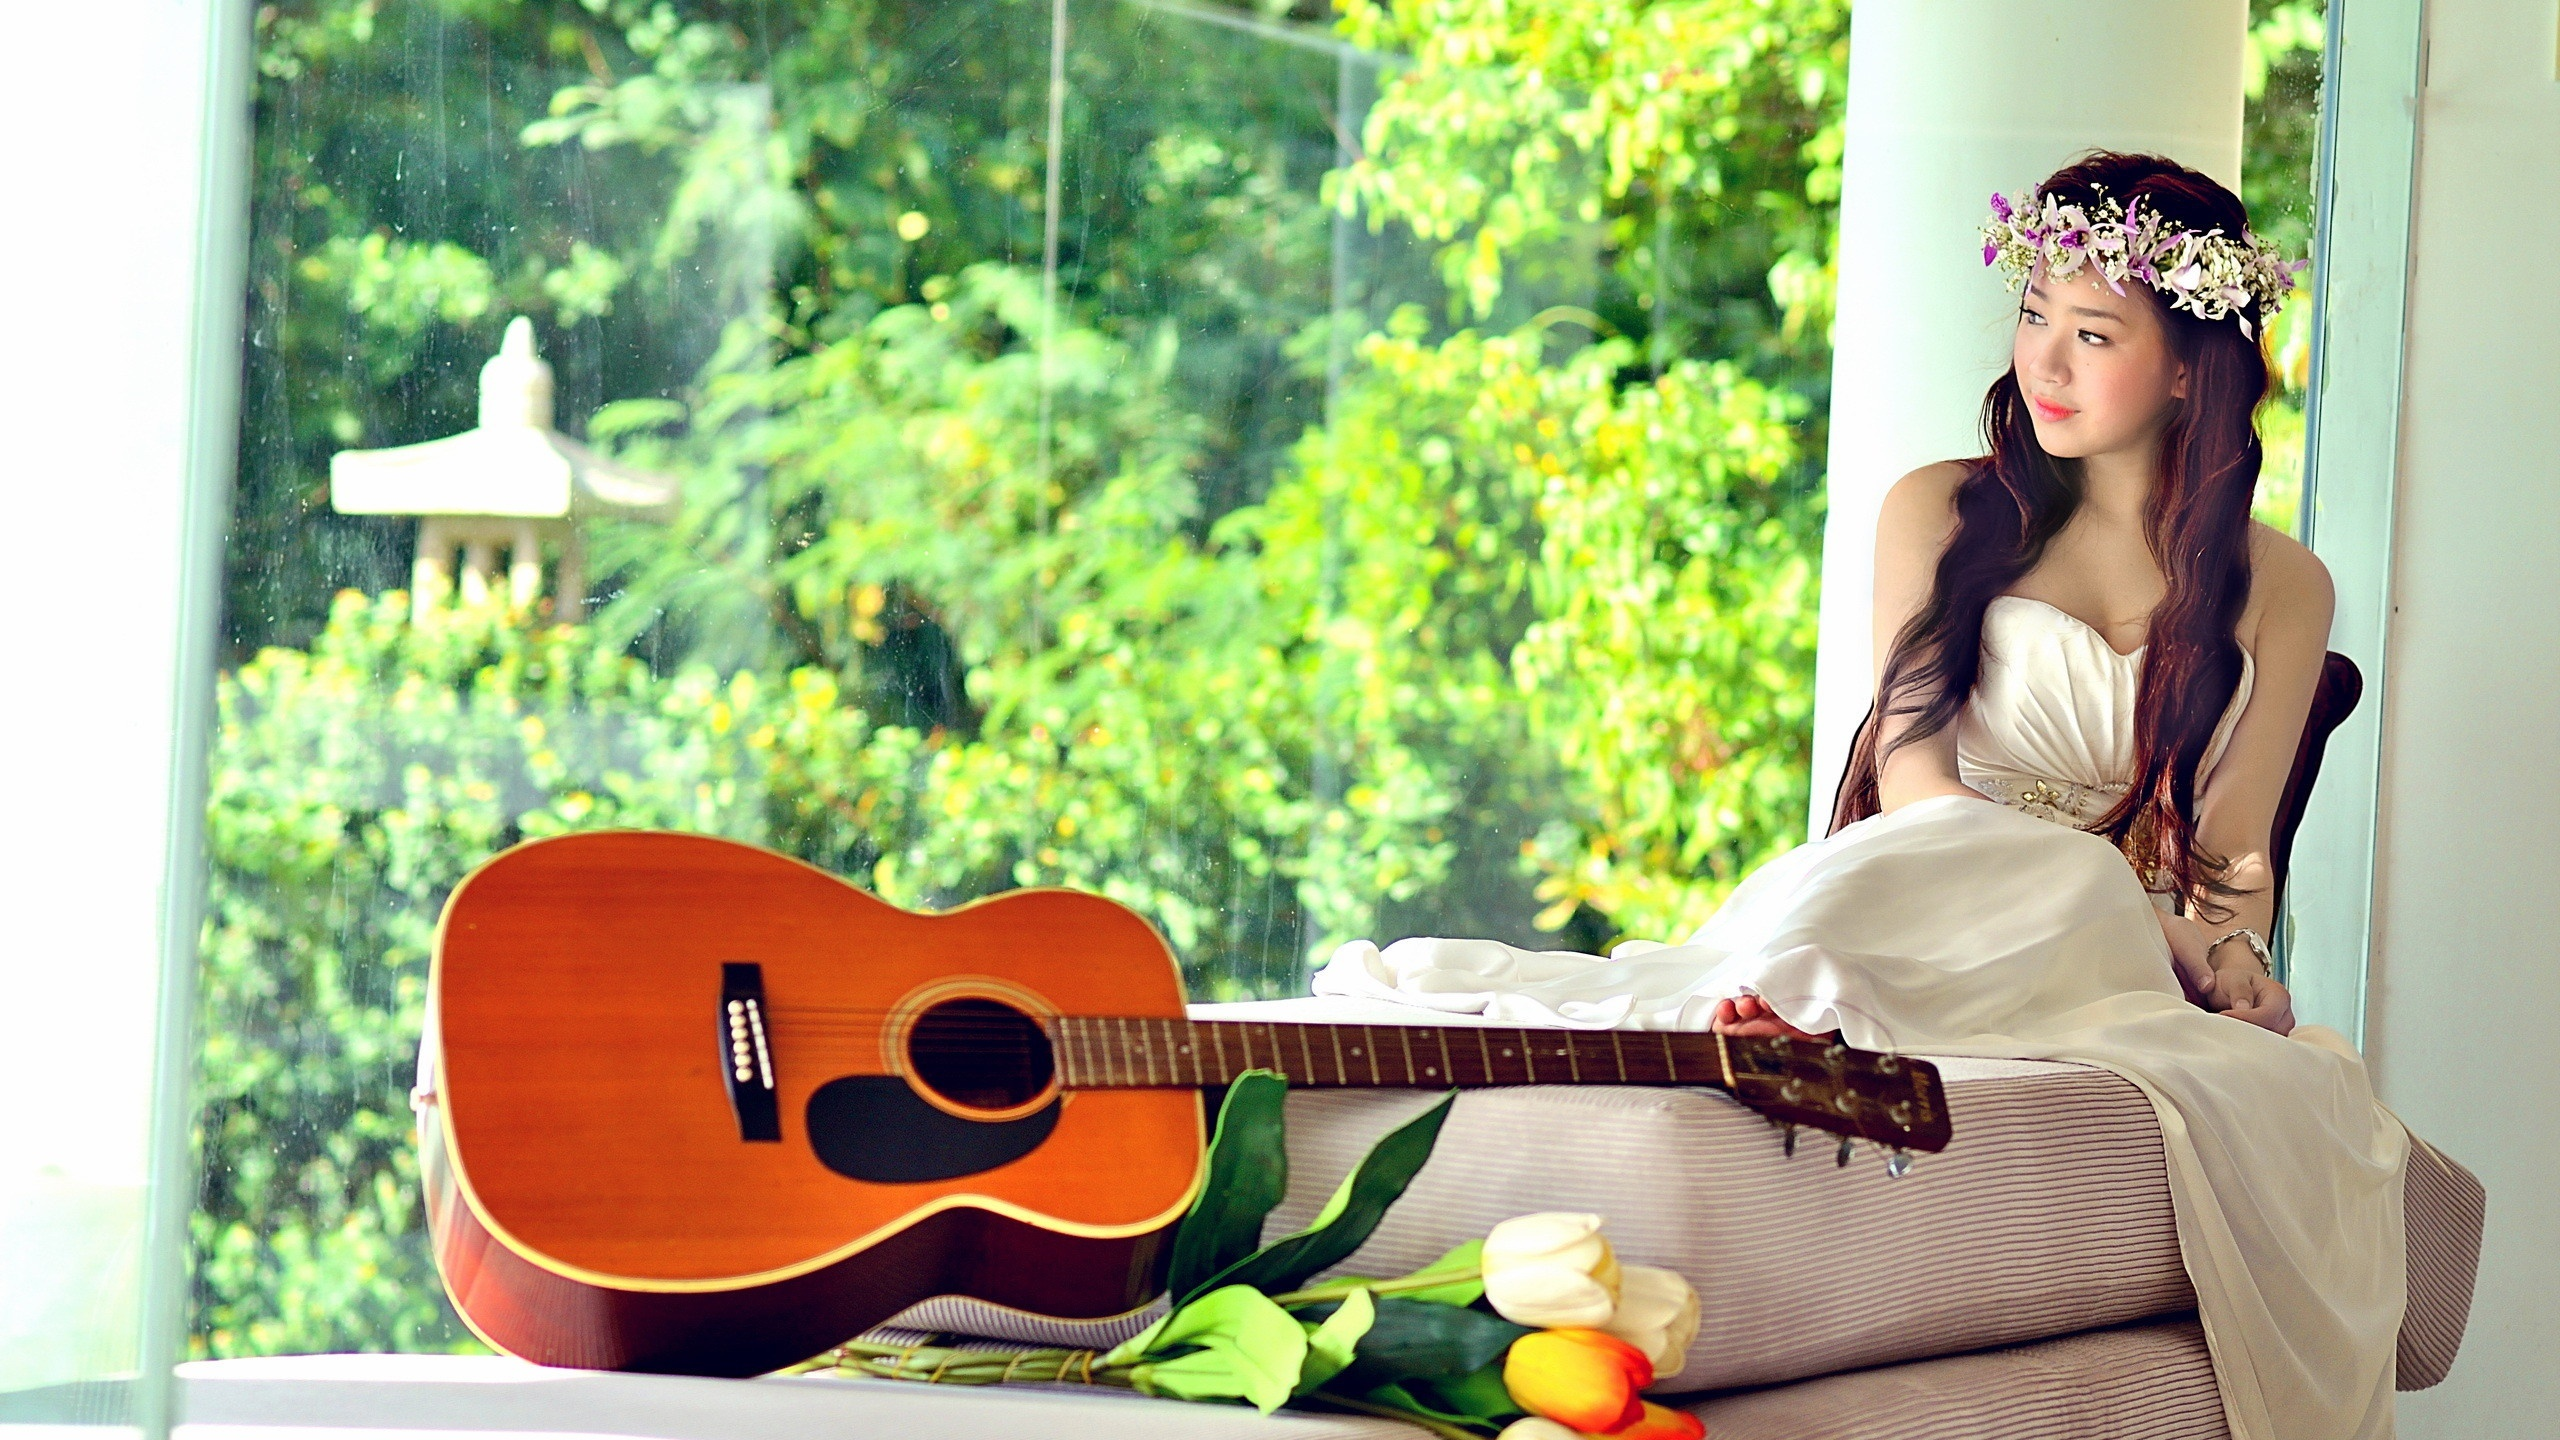 Asian music girl, white dress, guitar, tulips 2560x1440 wallpaper